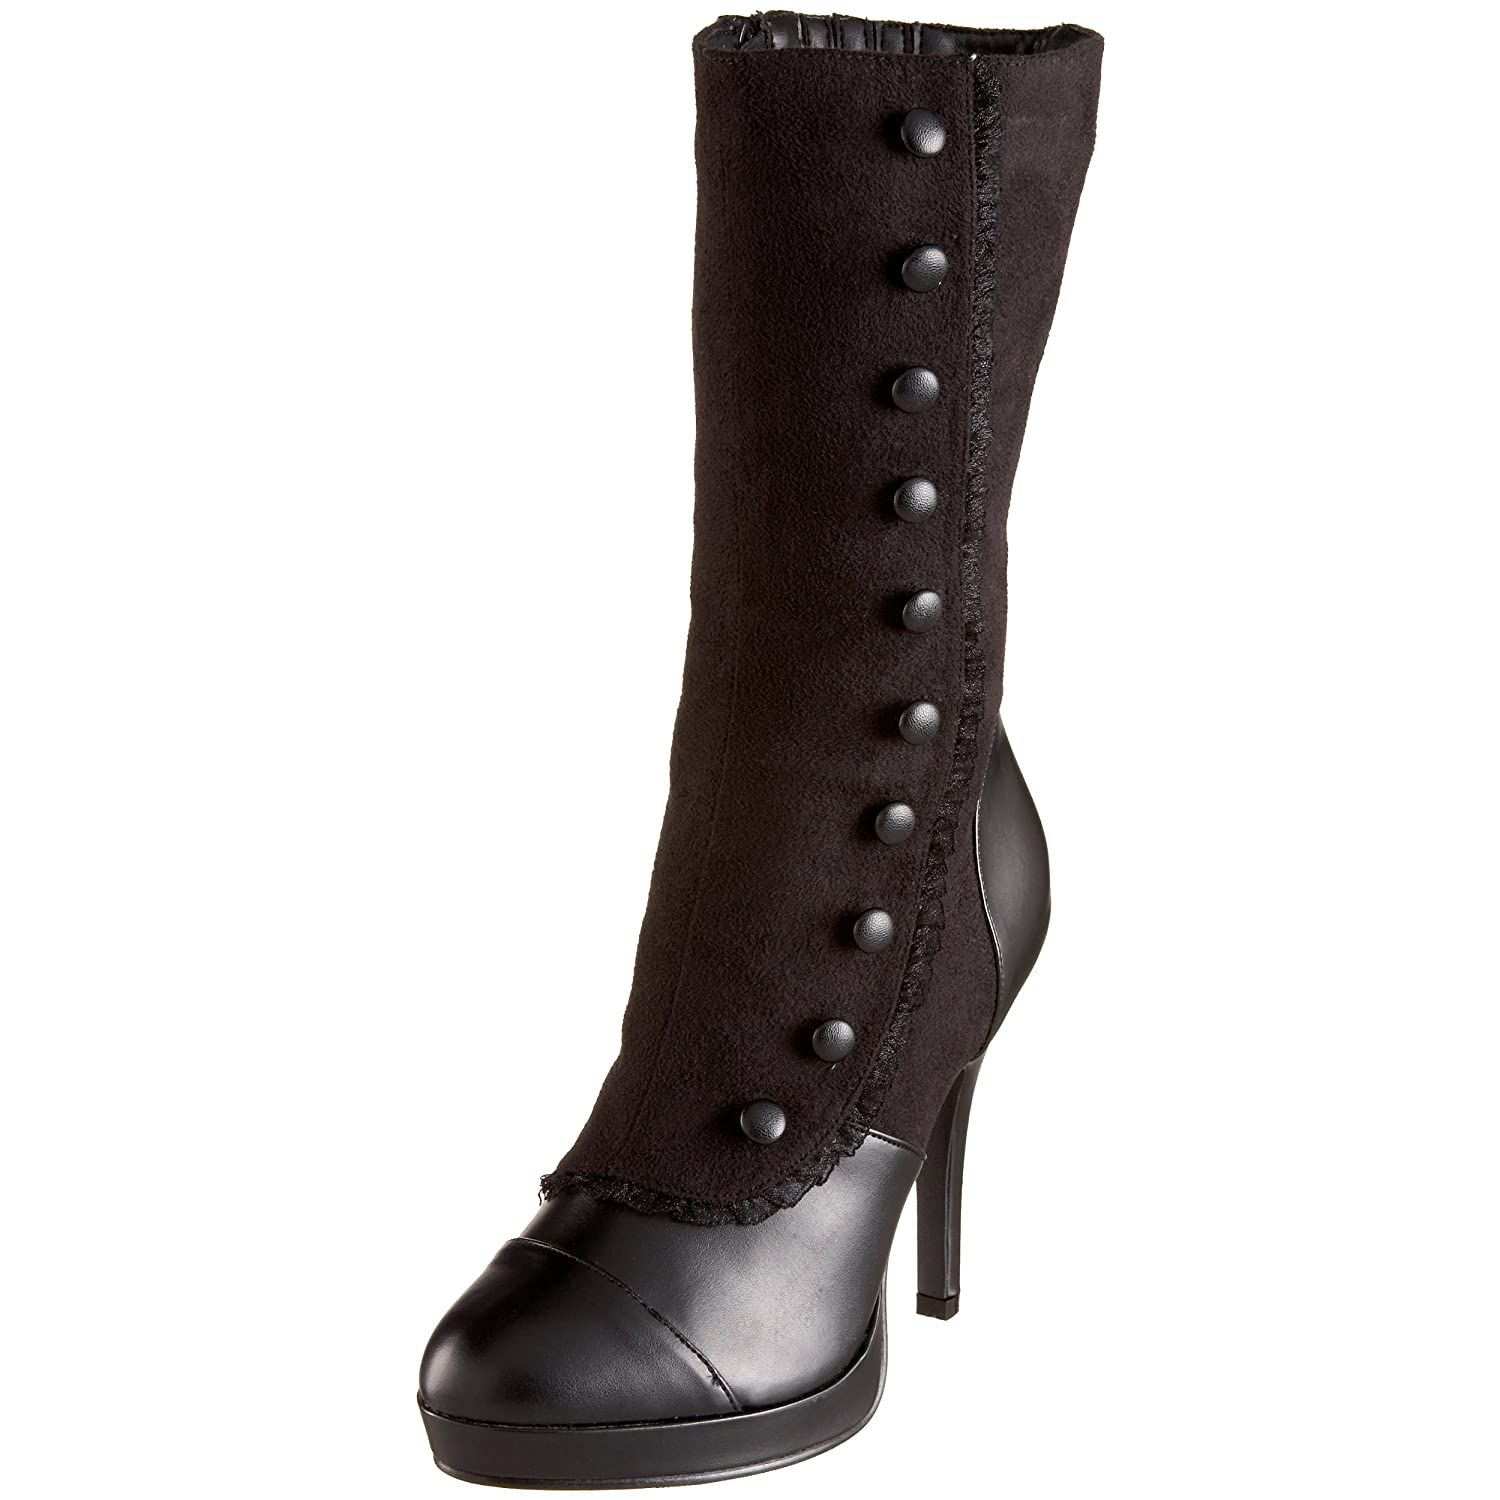 Ladies Victorian Boots & Shoes  Womens Splendor-130 Mid-Calf Boot $45.96 AT vintagedancer.com